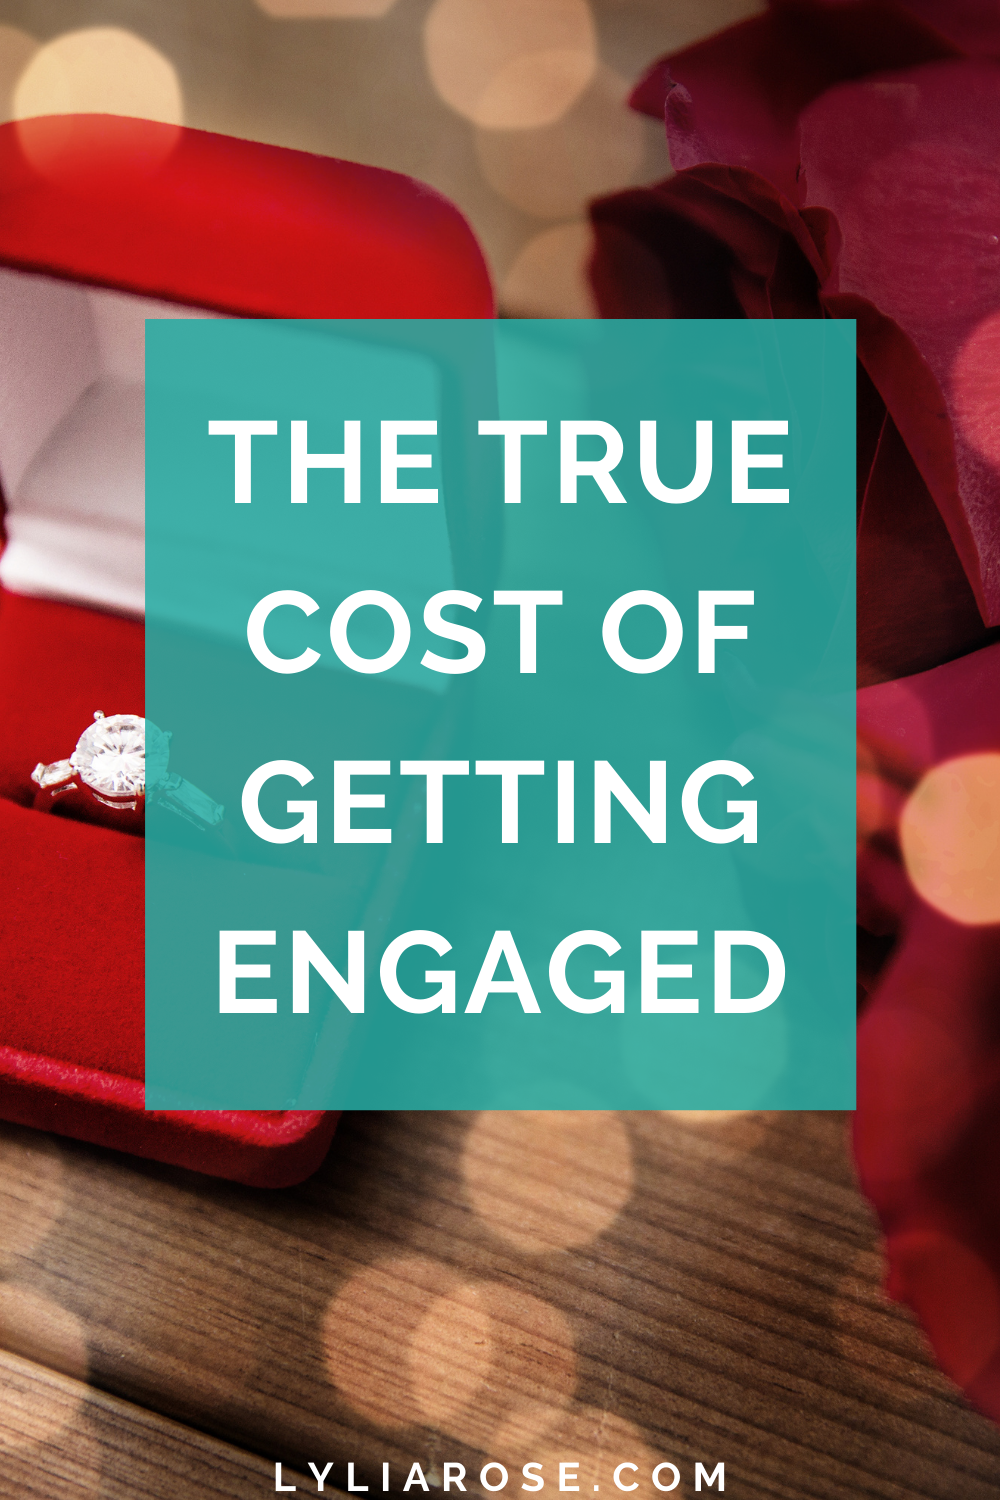 The true cost of getting engaged